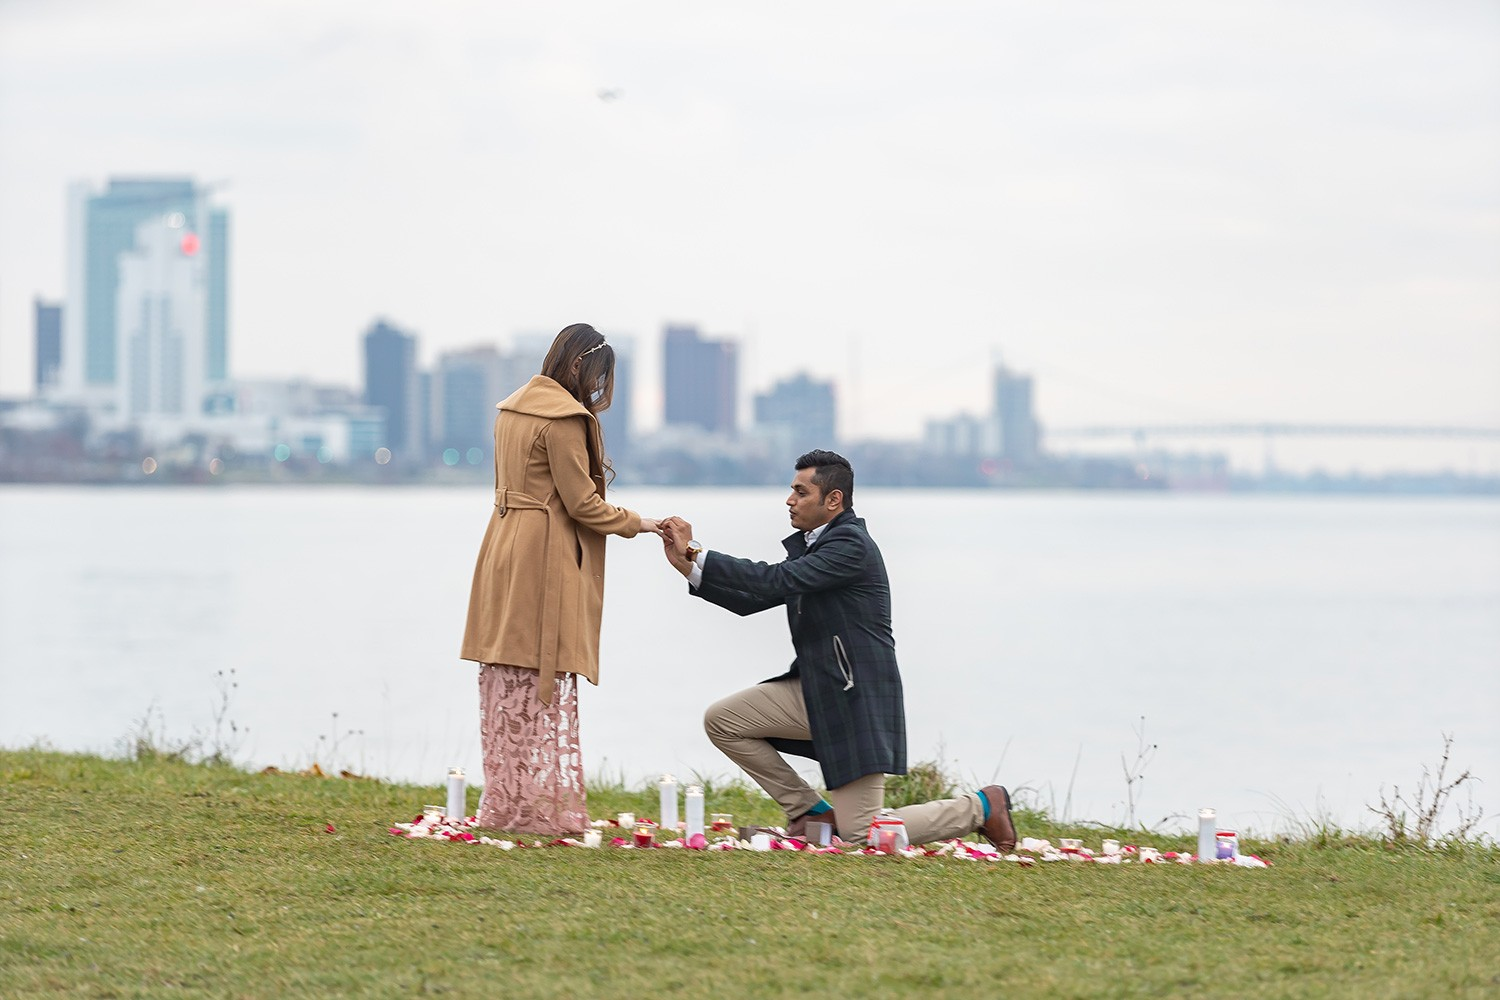 From selecting the ring to popping the big question. Your Detroit Engagement Proposal Planner is experienced in planning something amazing because you want a memorable experience for your significant other.